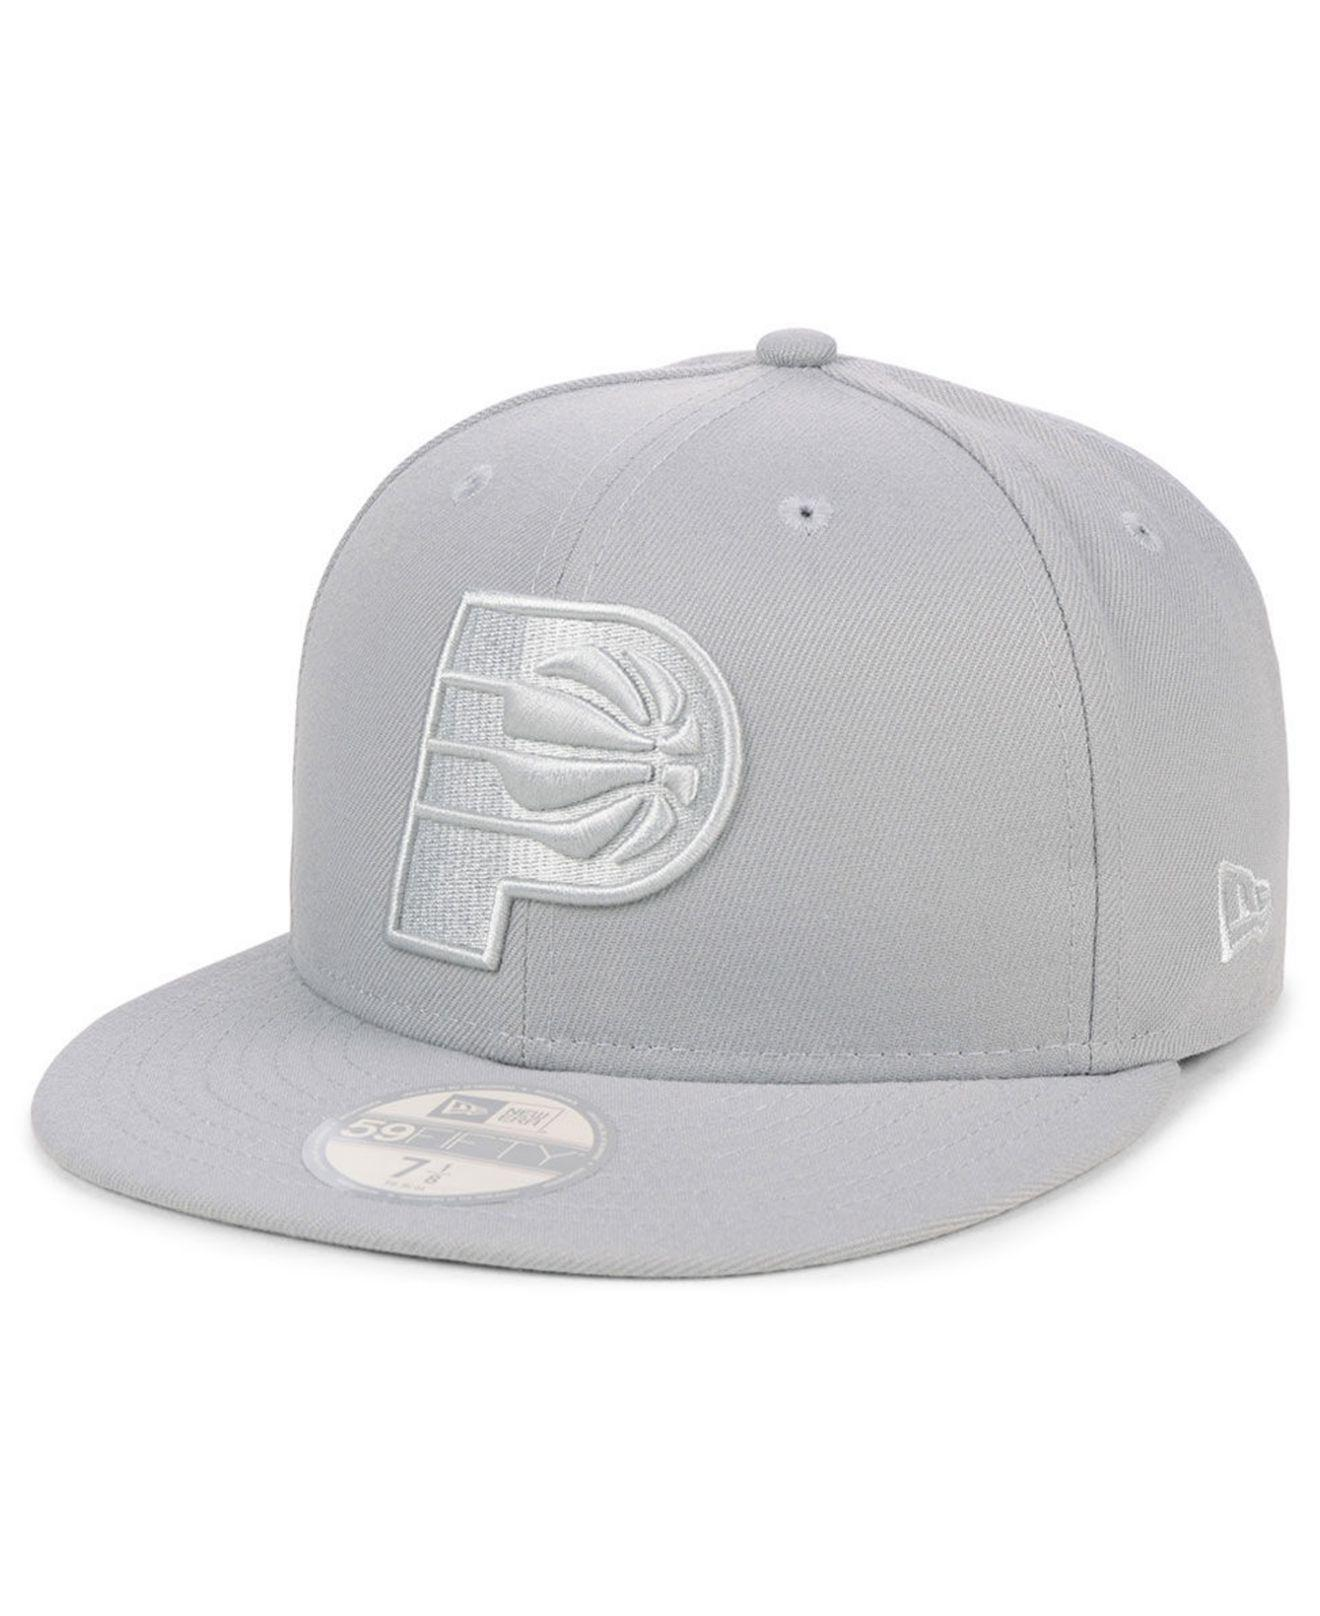 reputable site 94107 56121 ... where can i buy ktz. mens gray indiana pacers fall prism pack 59fifty  fitted cap